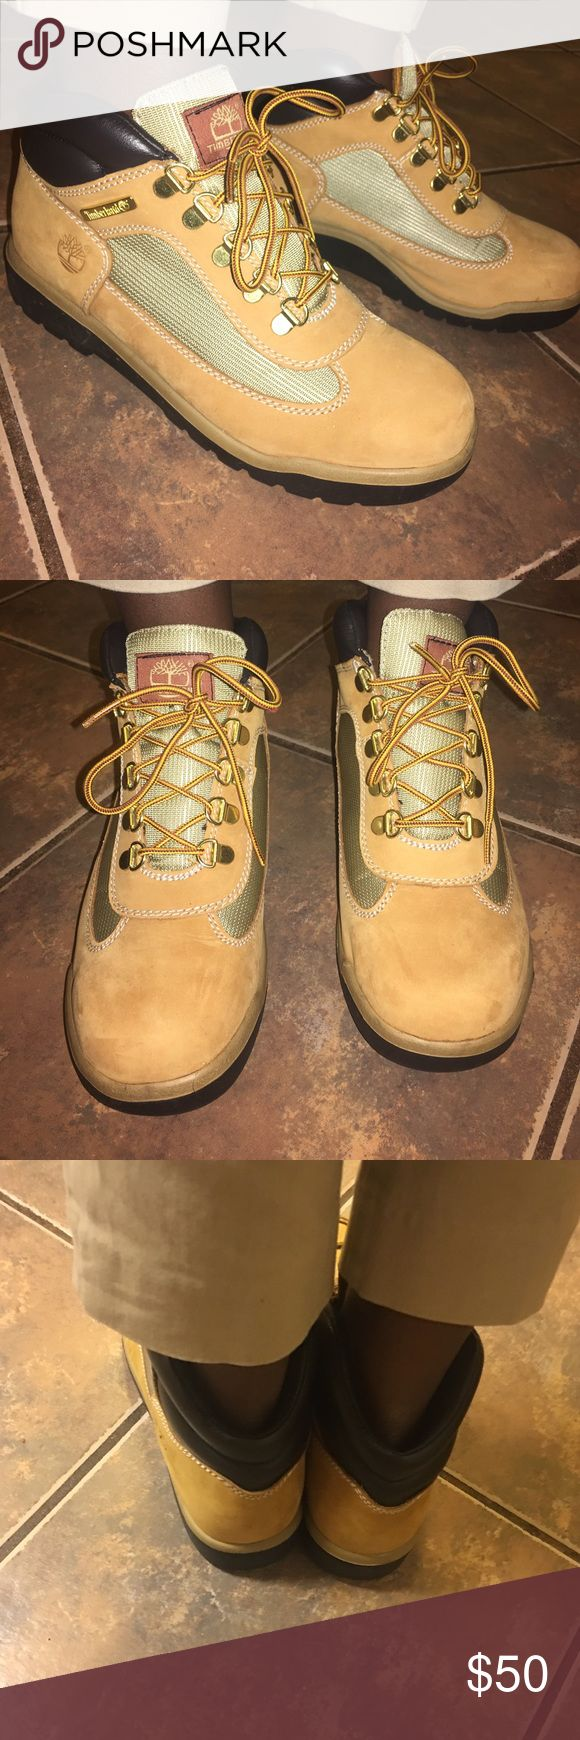 😍Timberland Field Boot 😍 Size 5.5 Kids Timberland Field Boot Size 5.5/W7. Excellent Condition. Comes with box. Make this ☝🏾️treasure yours today ☺️. Don't be scared to make an offer, you never know unless you try. Bundle multiple items for the best savings. Pay one low price for shipping 🎁!   Thanks for stepping into Coco's Closet 😘 Timberland Shoes Boots